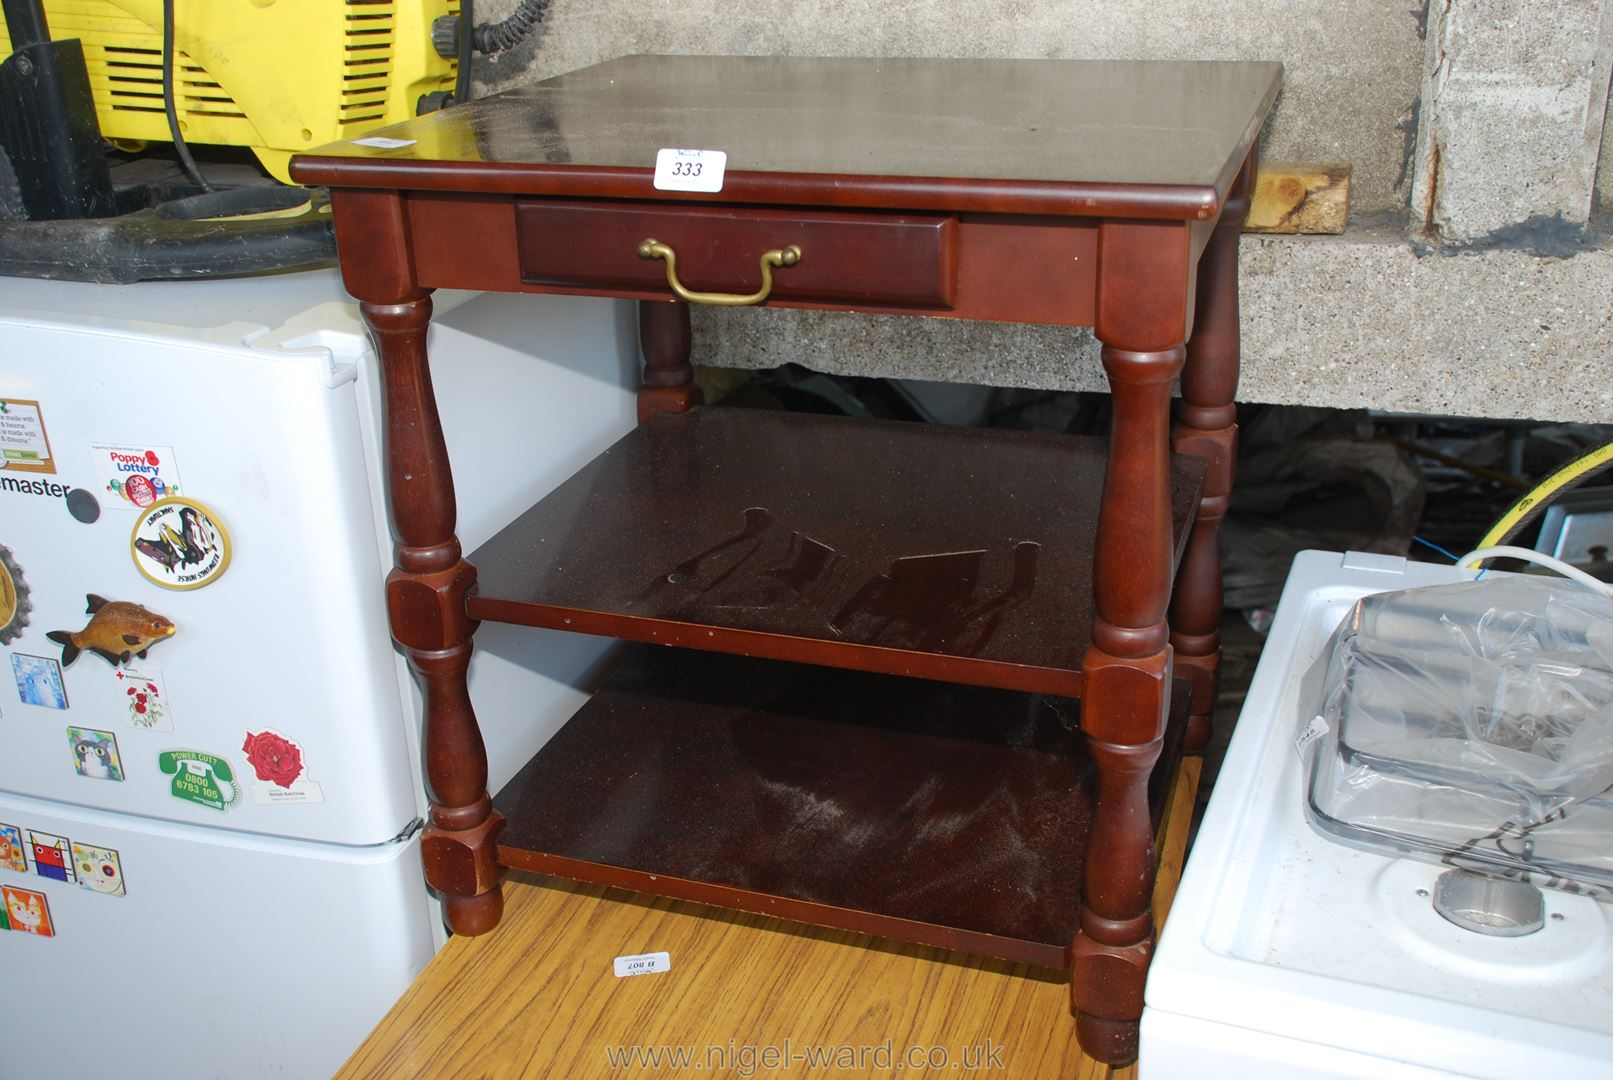 Occasional table with drawer and under shelves